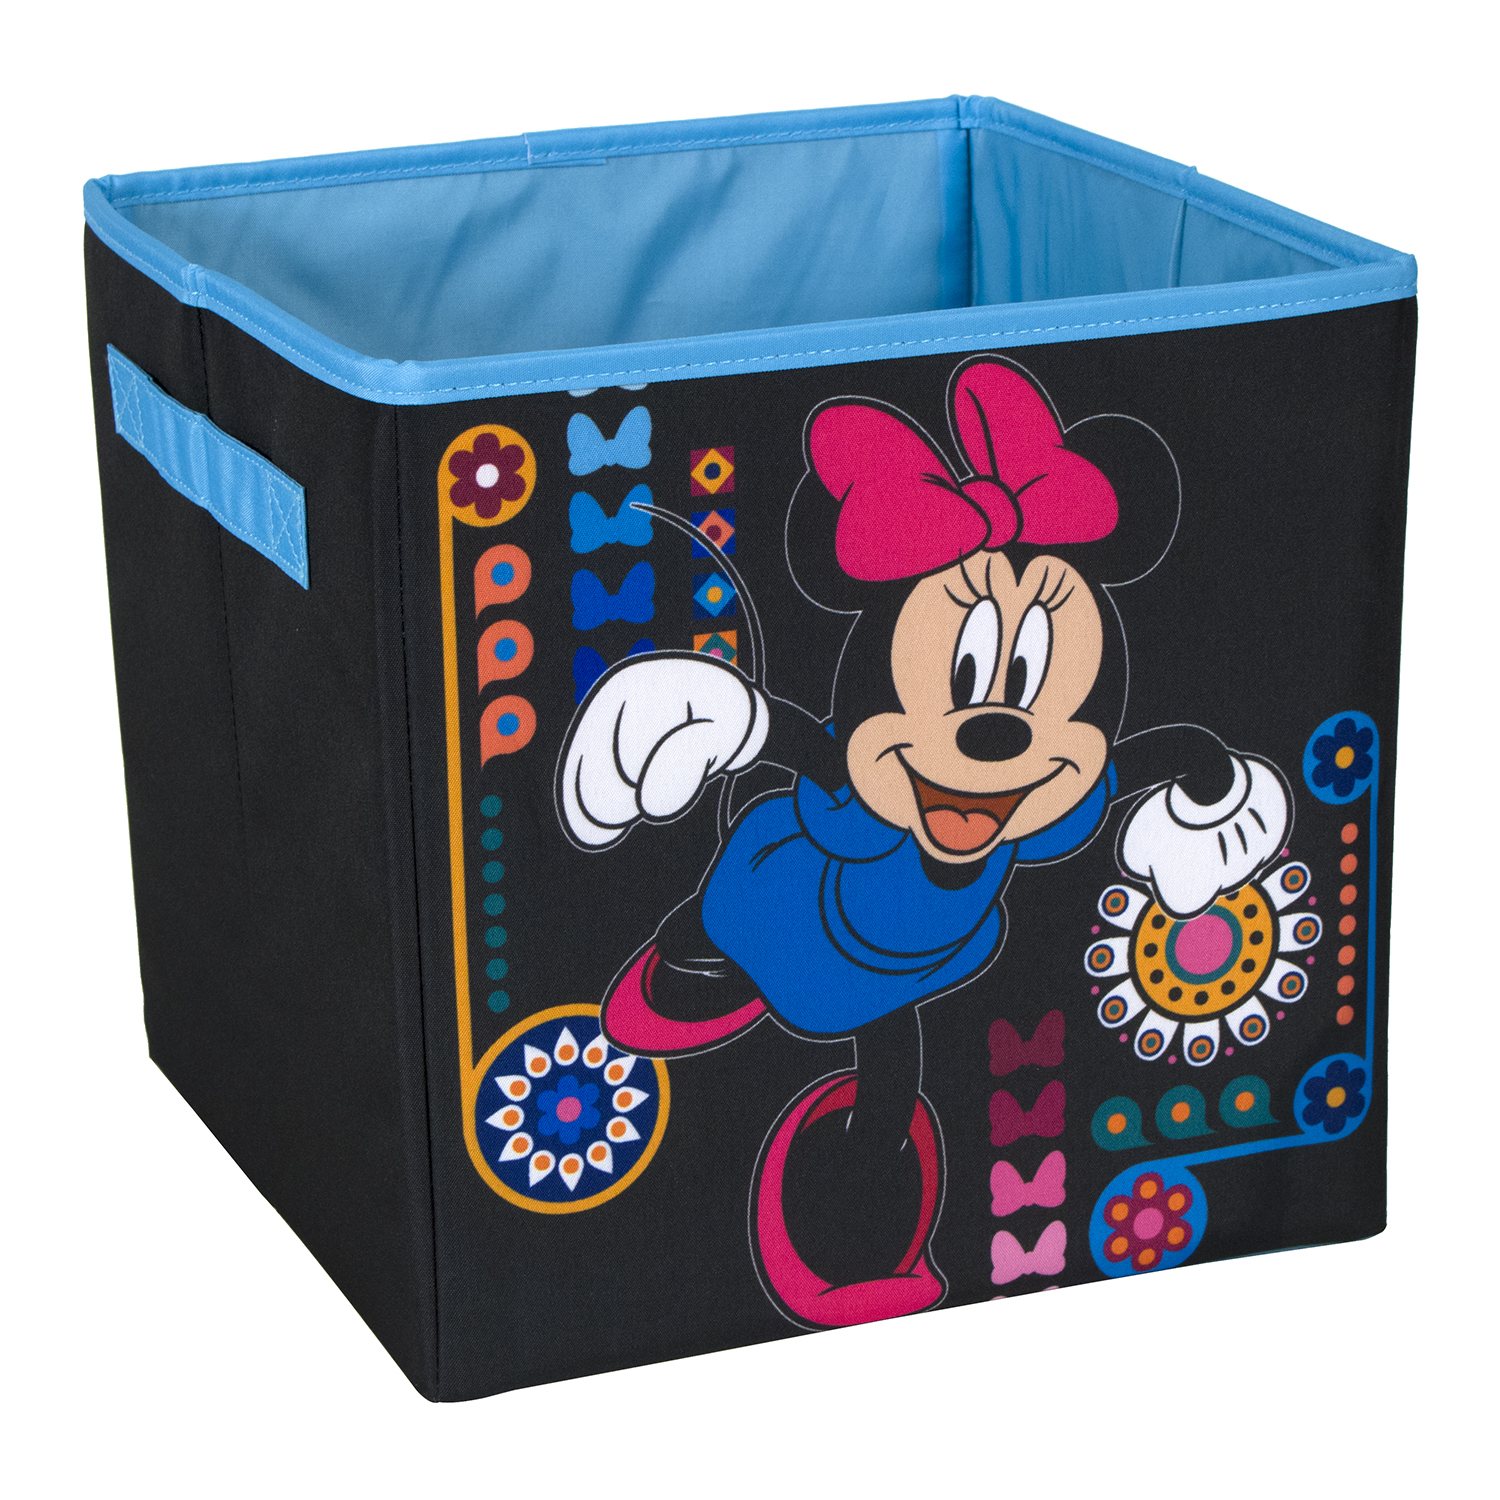 Disney Minnie Mouse Collapsible Storage Bin